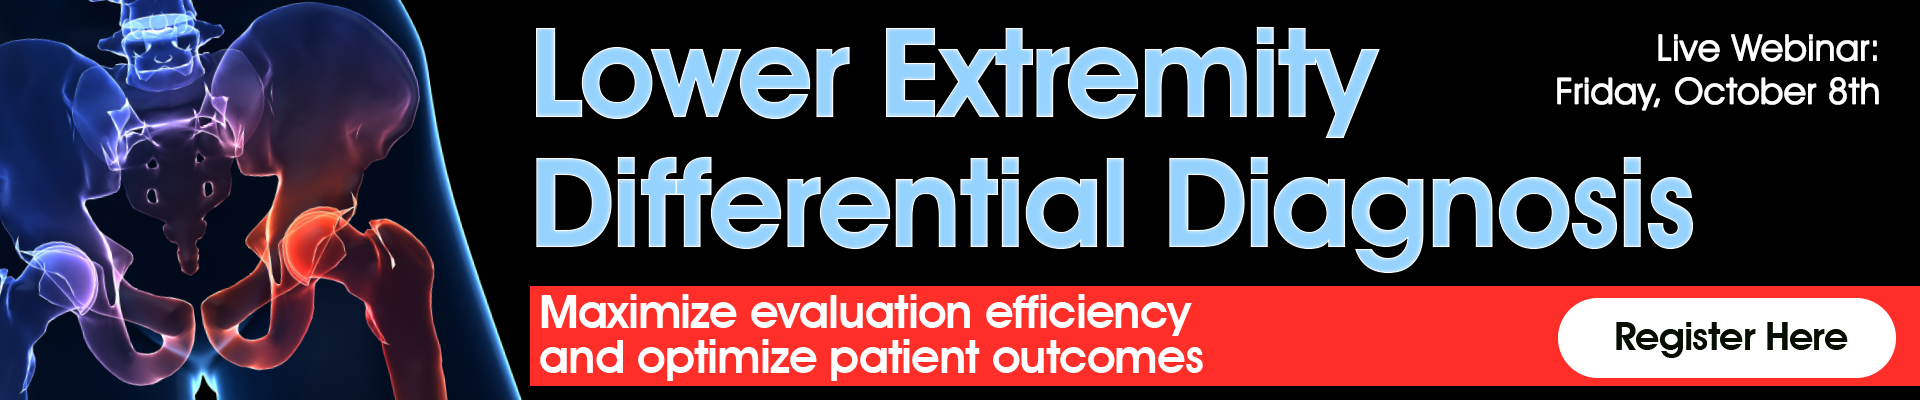 Lower Extremity Differential Diagnosis: Maximize evaluation efficiency and optimize patient outcomes